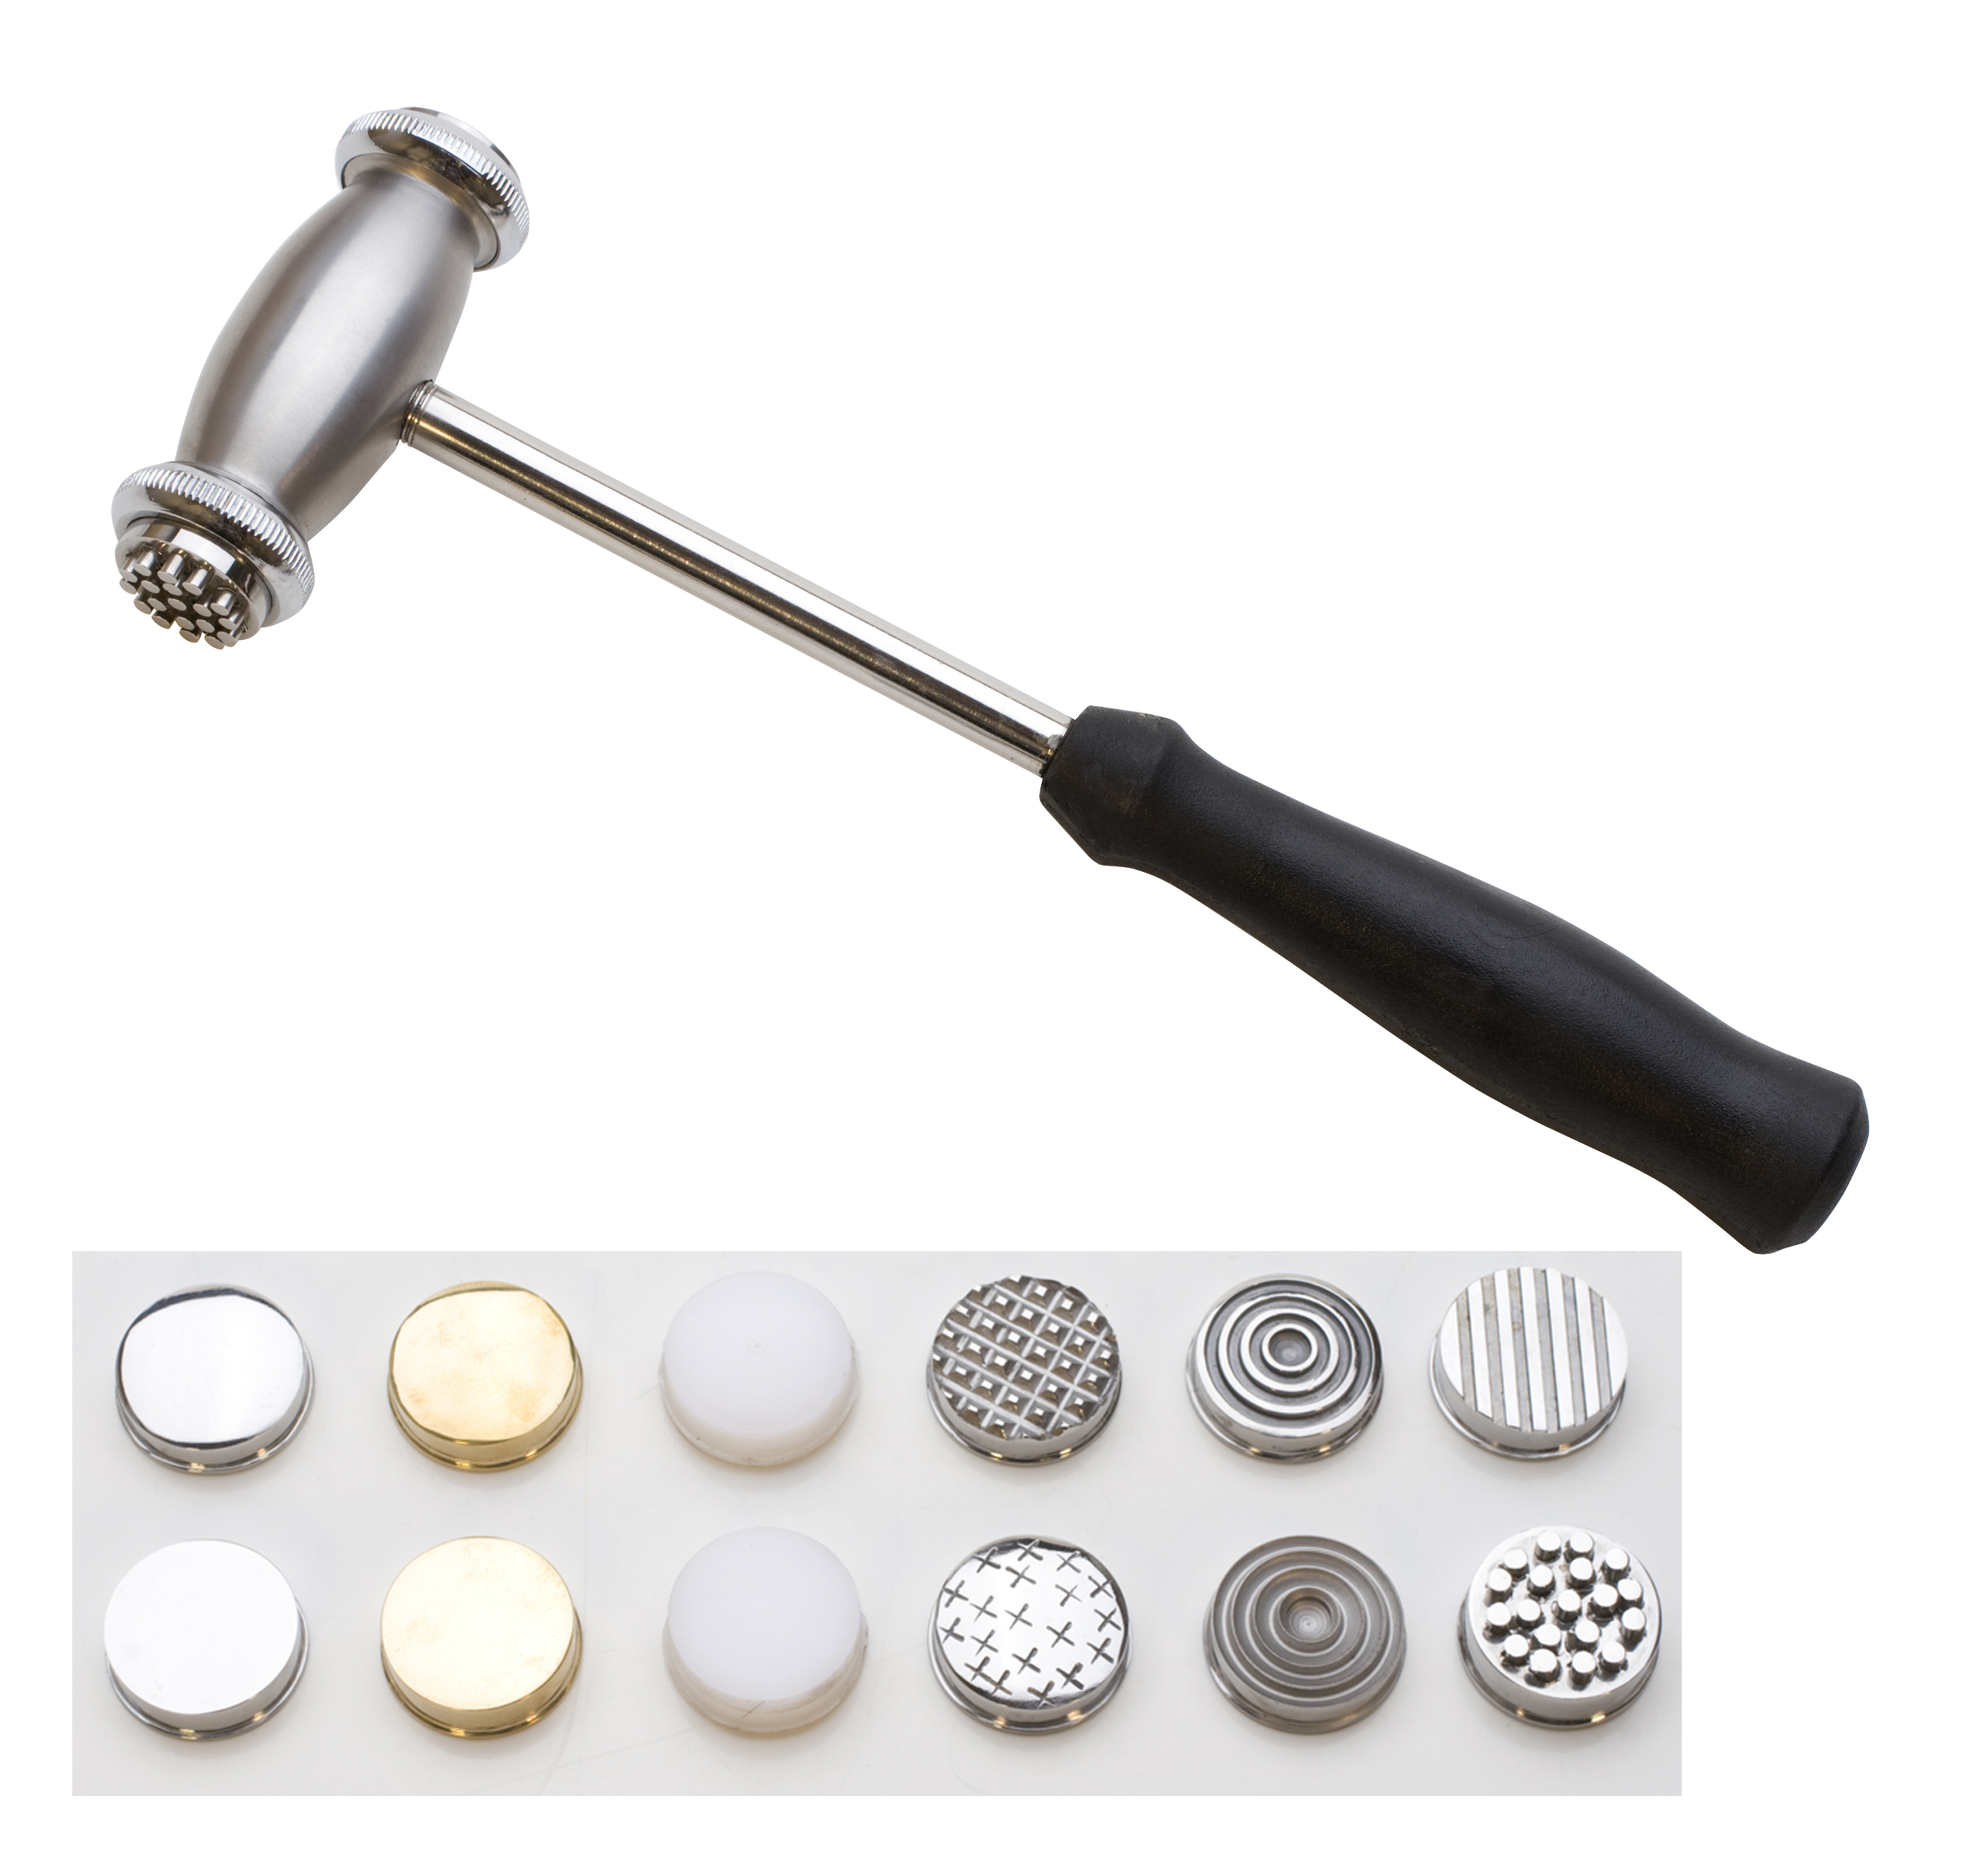 Professional Texturing Hammer With 12 Faces: Wire Jewelry | Wire ...